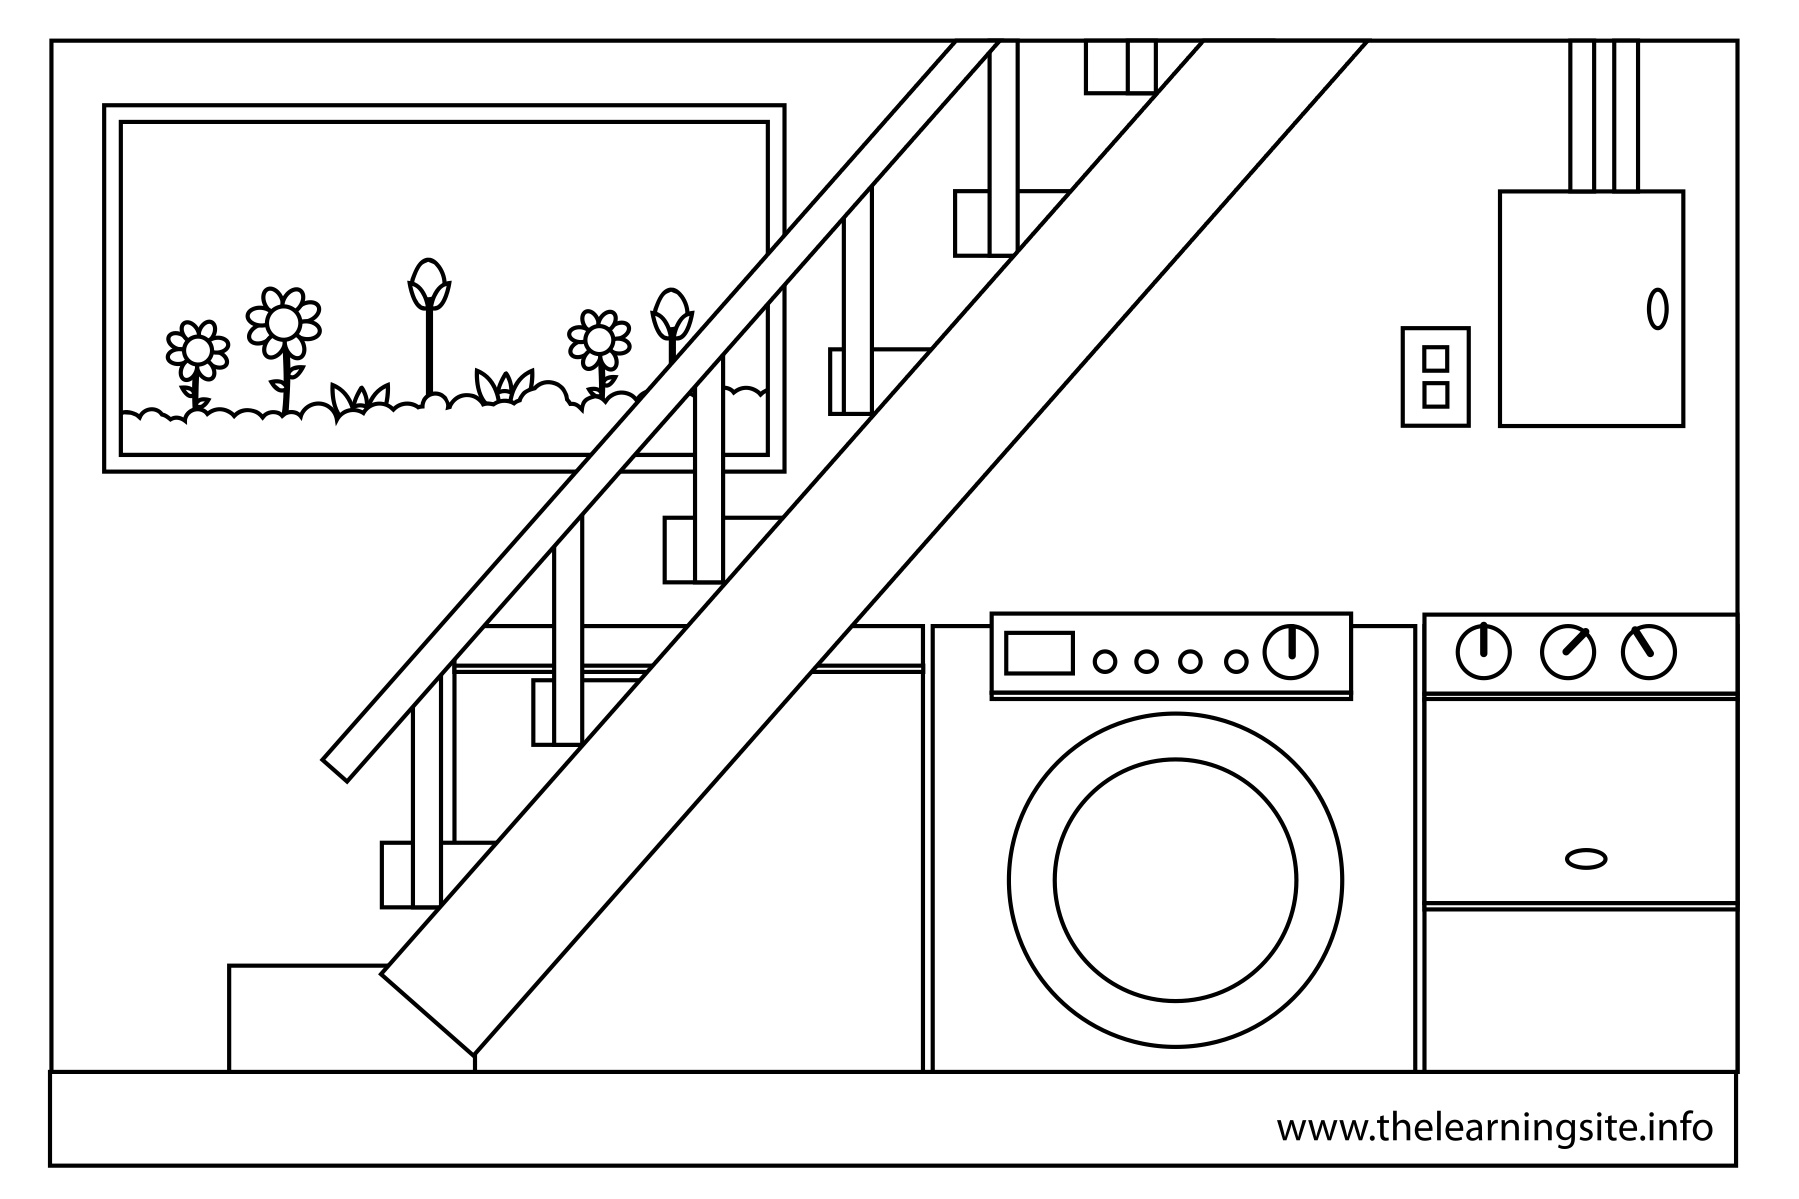 House Parts Coloring Page Sketch Coloring Page